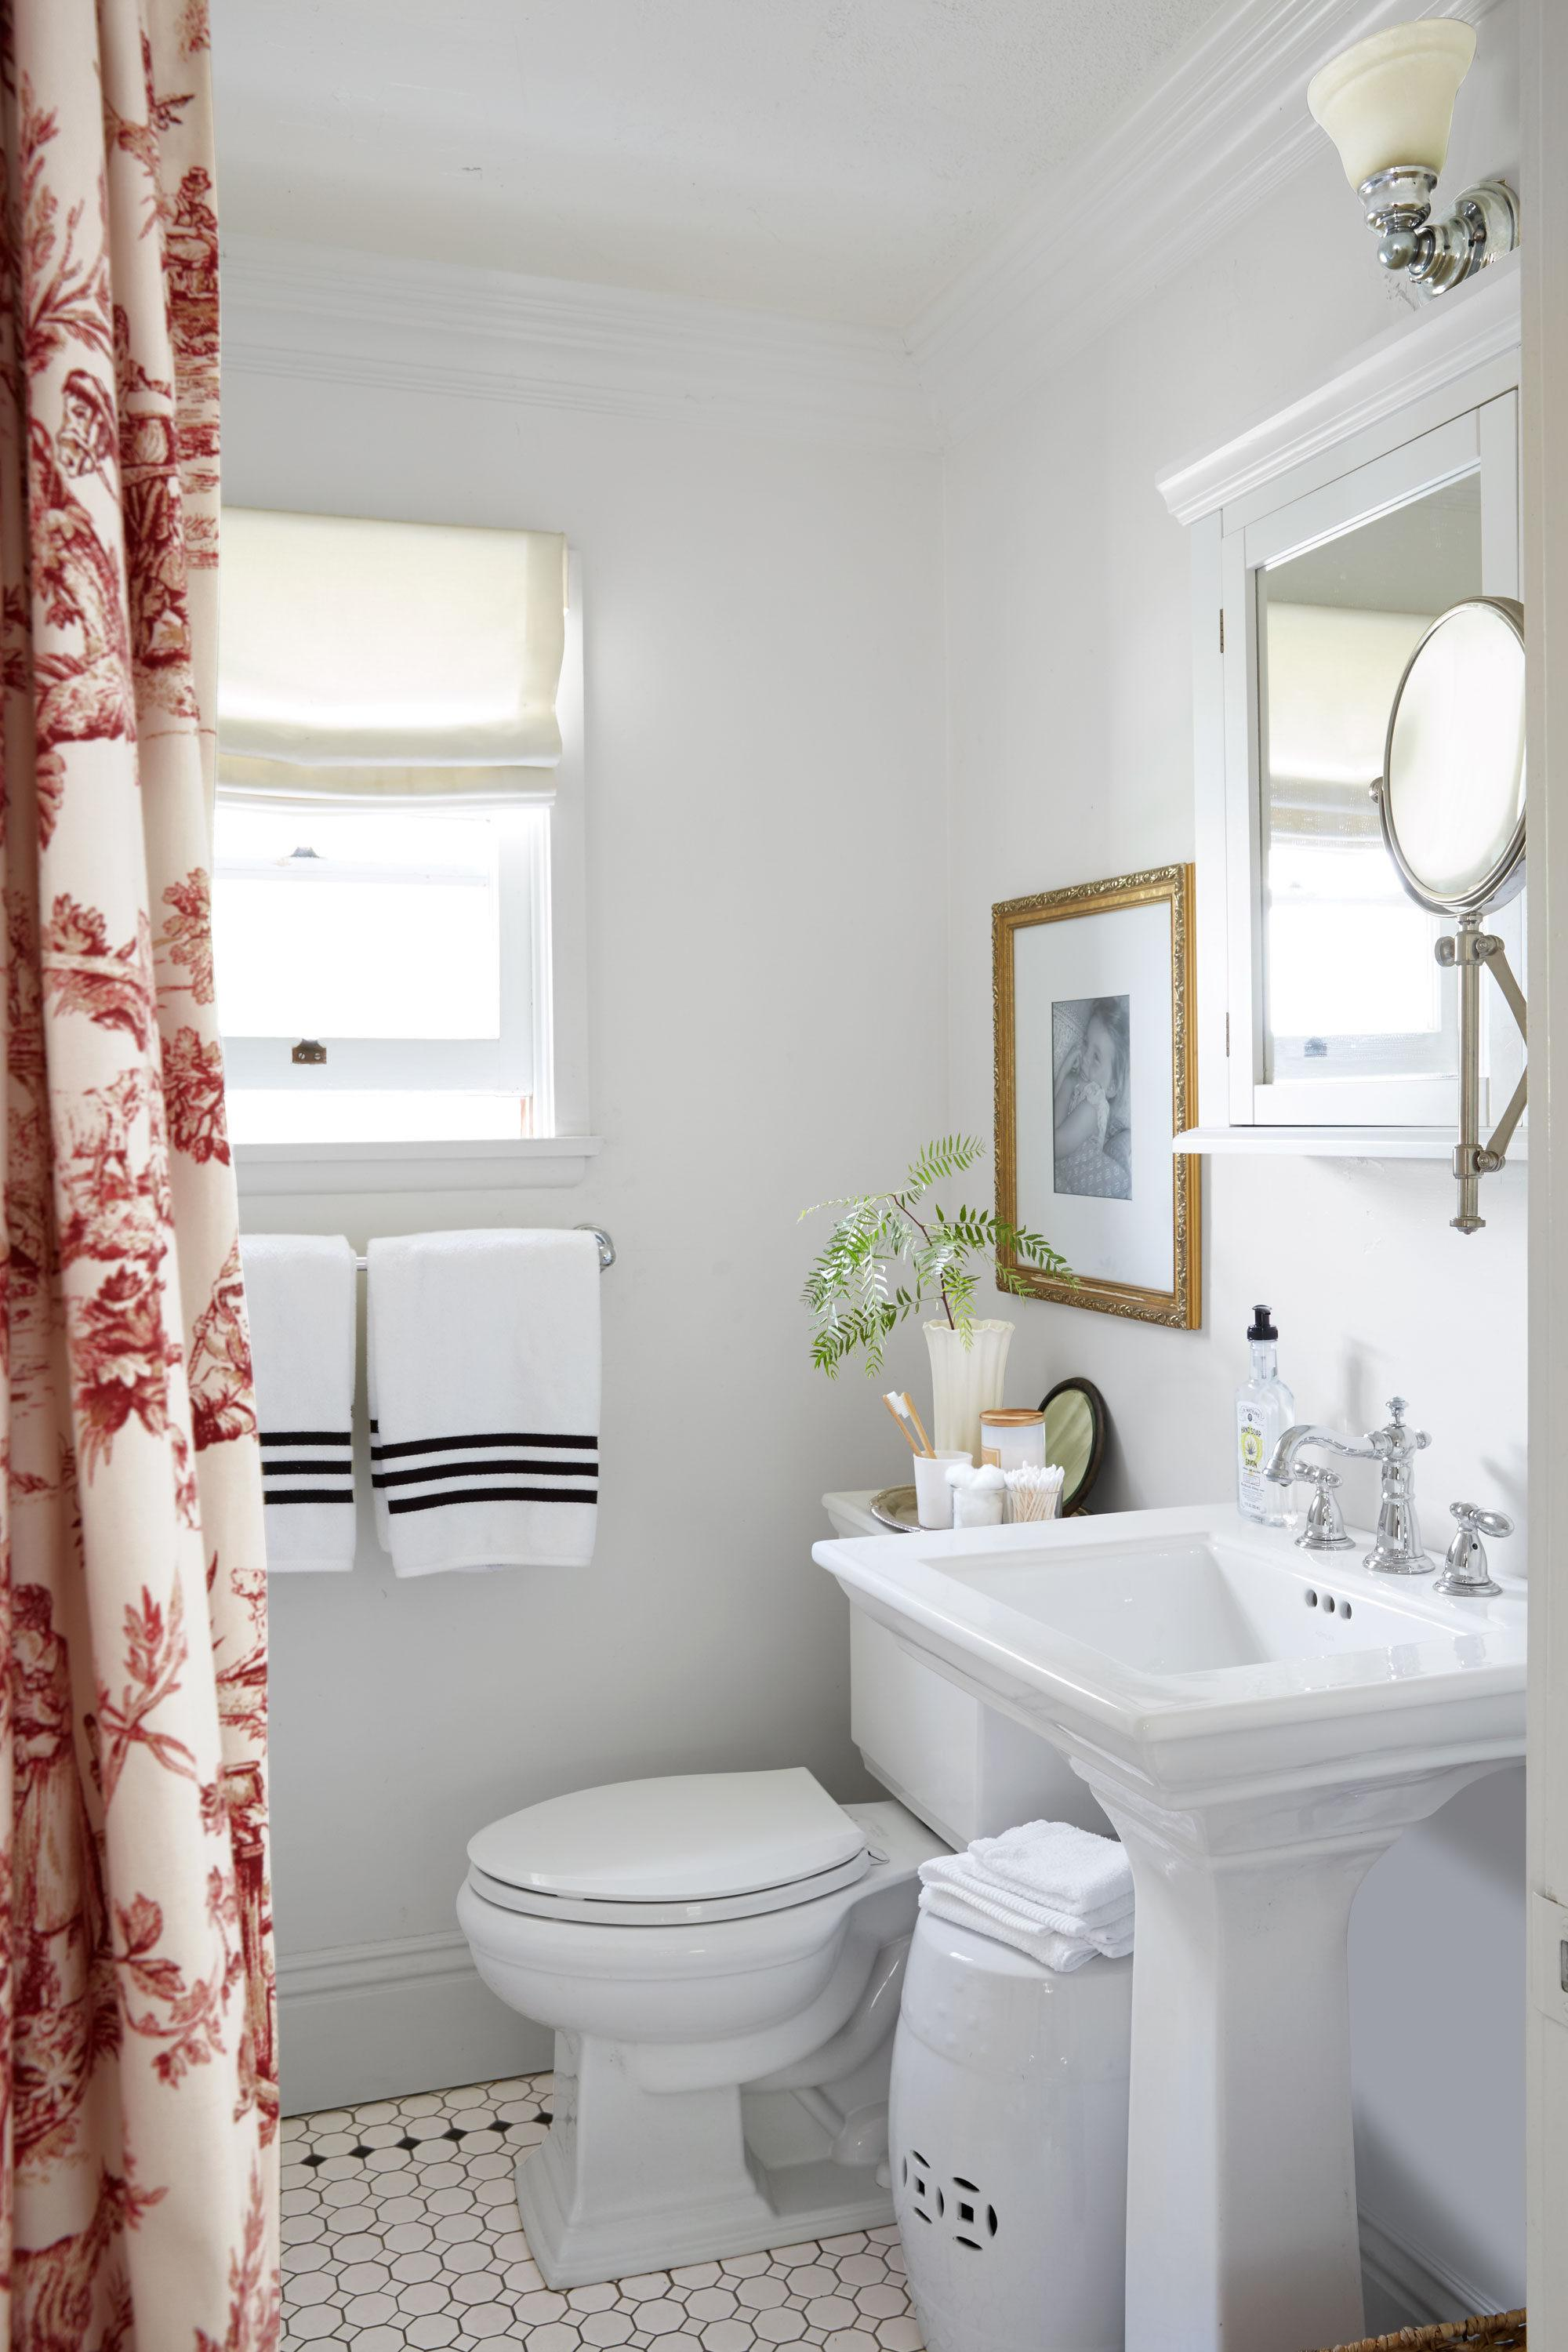 38 Captivating Modern Bathrooms Budget Designs That Will Leave You Breathless Pictures Decoratorist